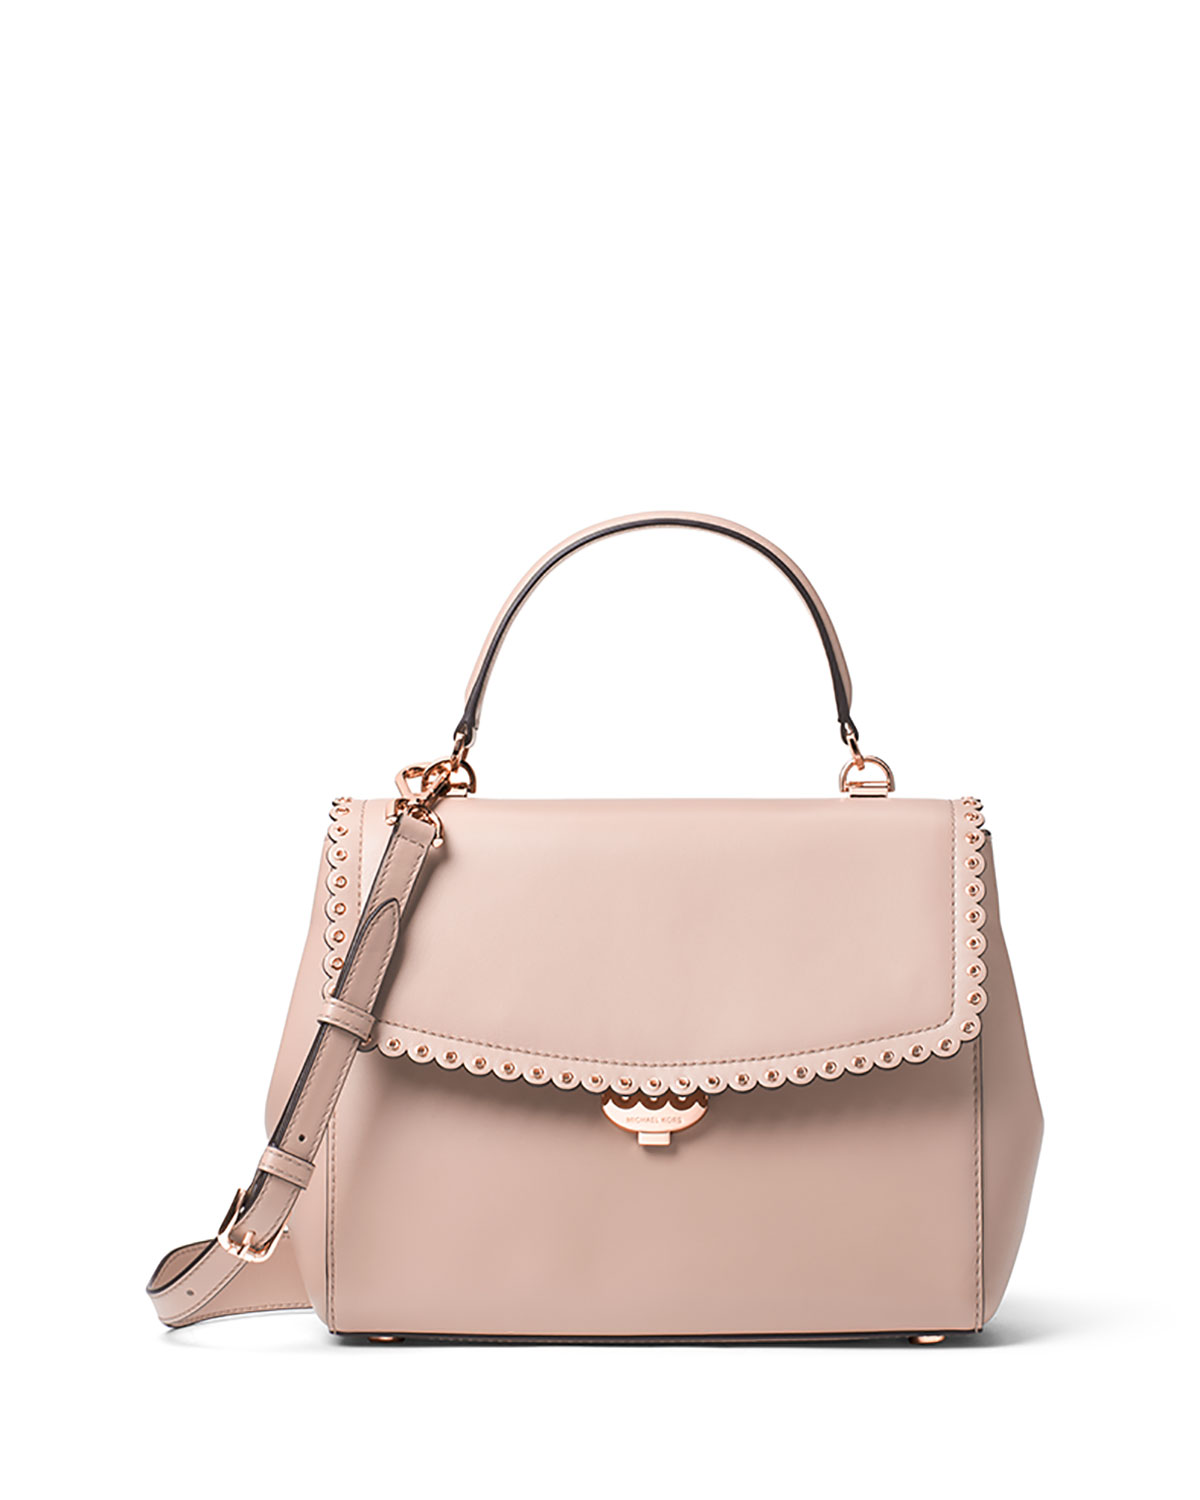 Ava Medium Saffiano Satchel Bag, Light Pink